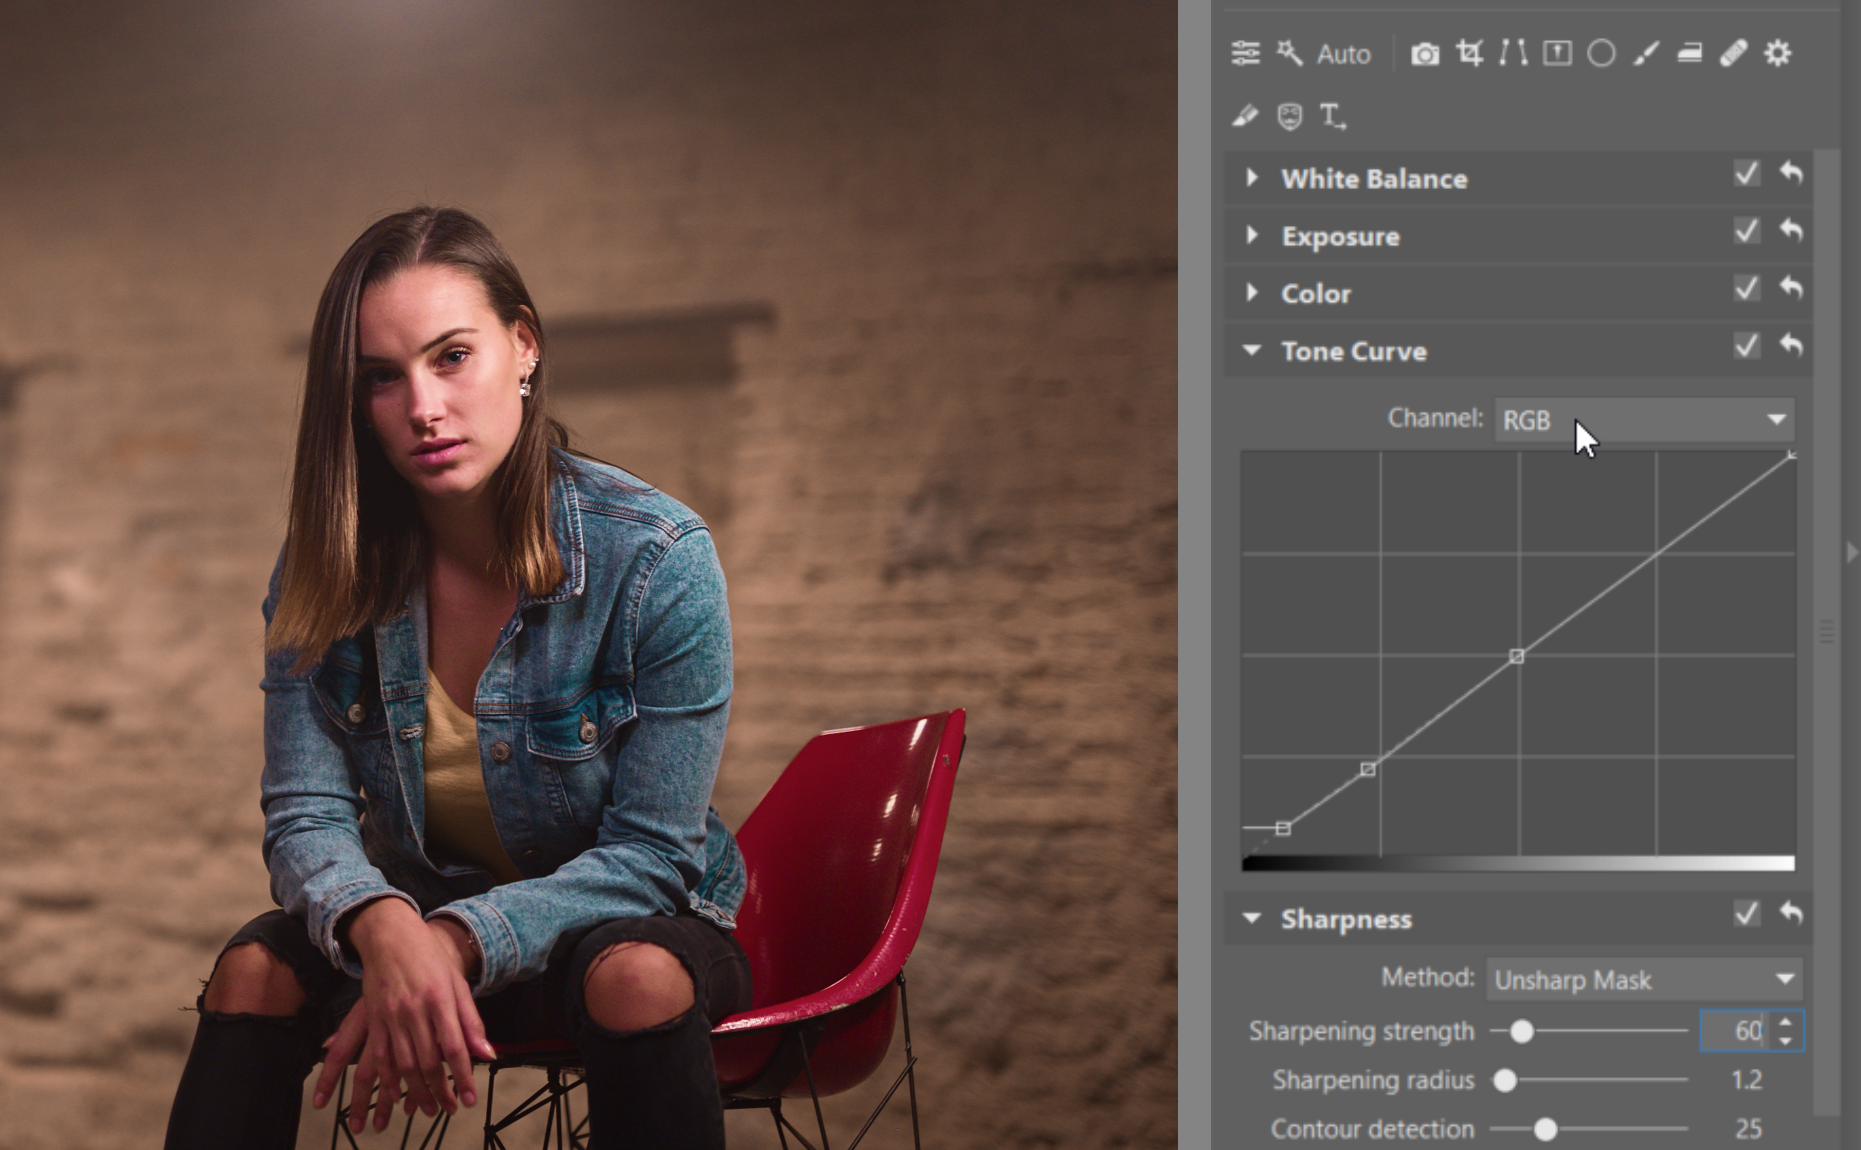 Try Editing a Nighttime Portrait - RGB curve